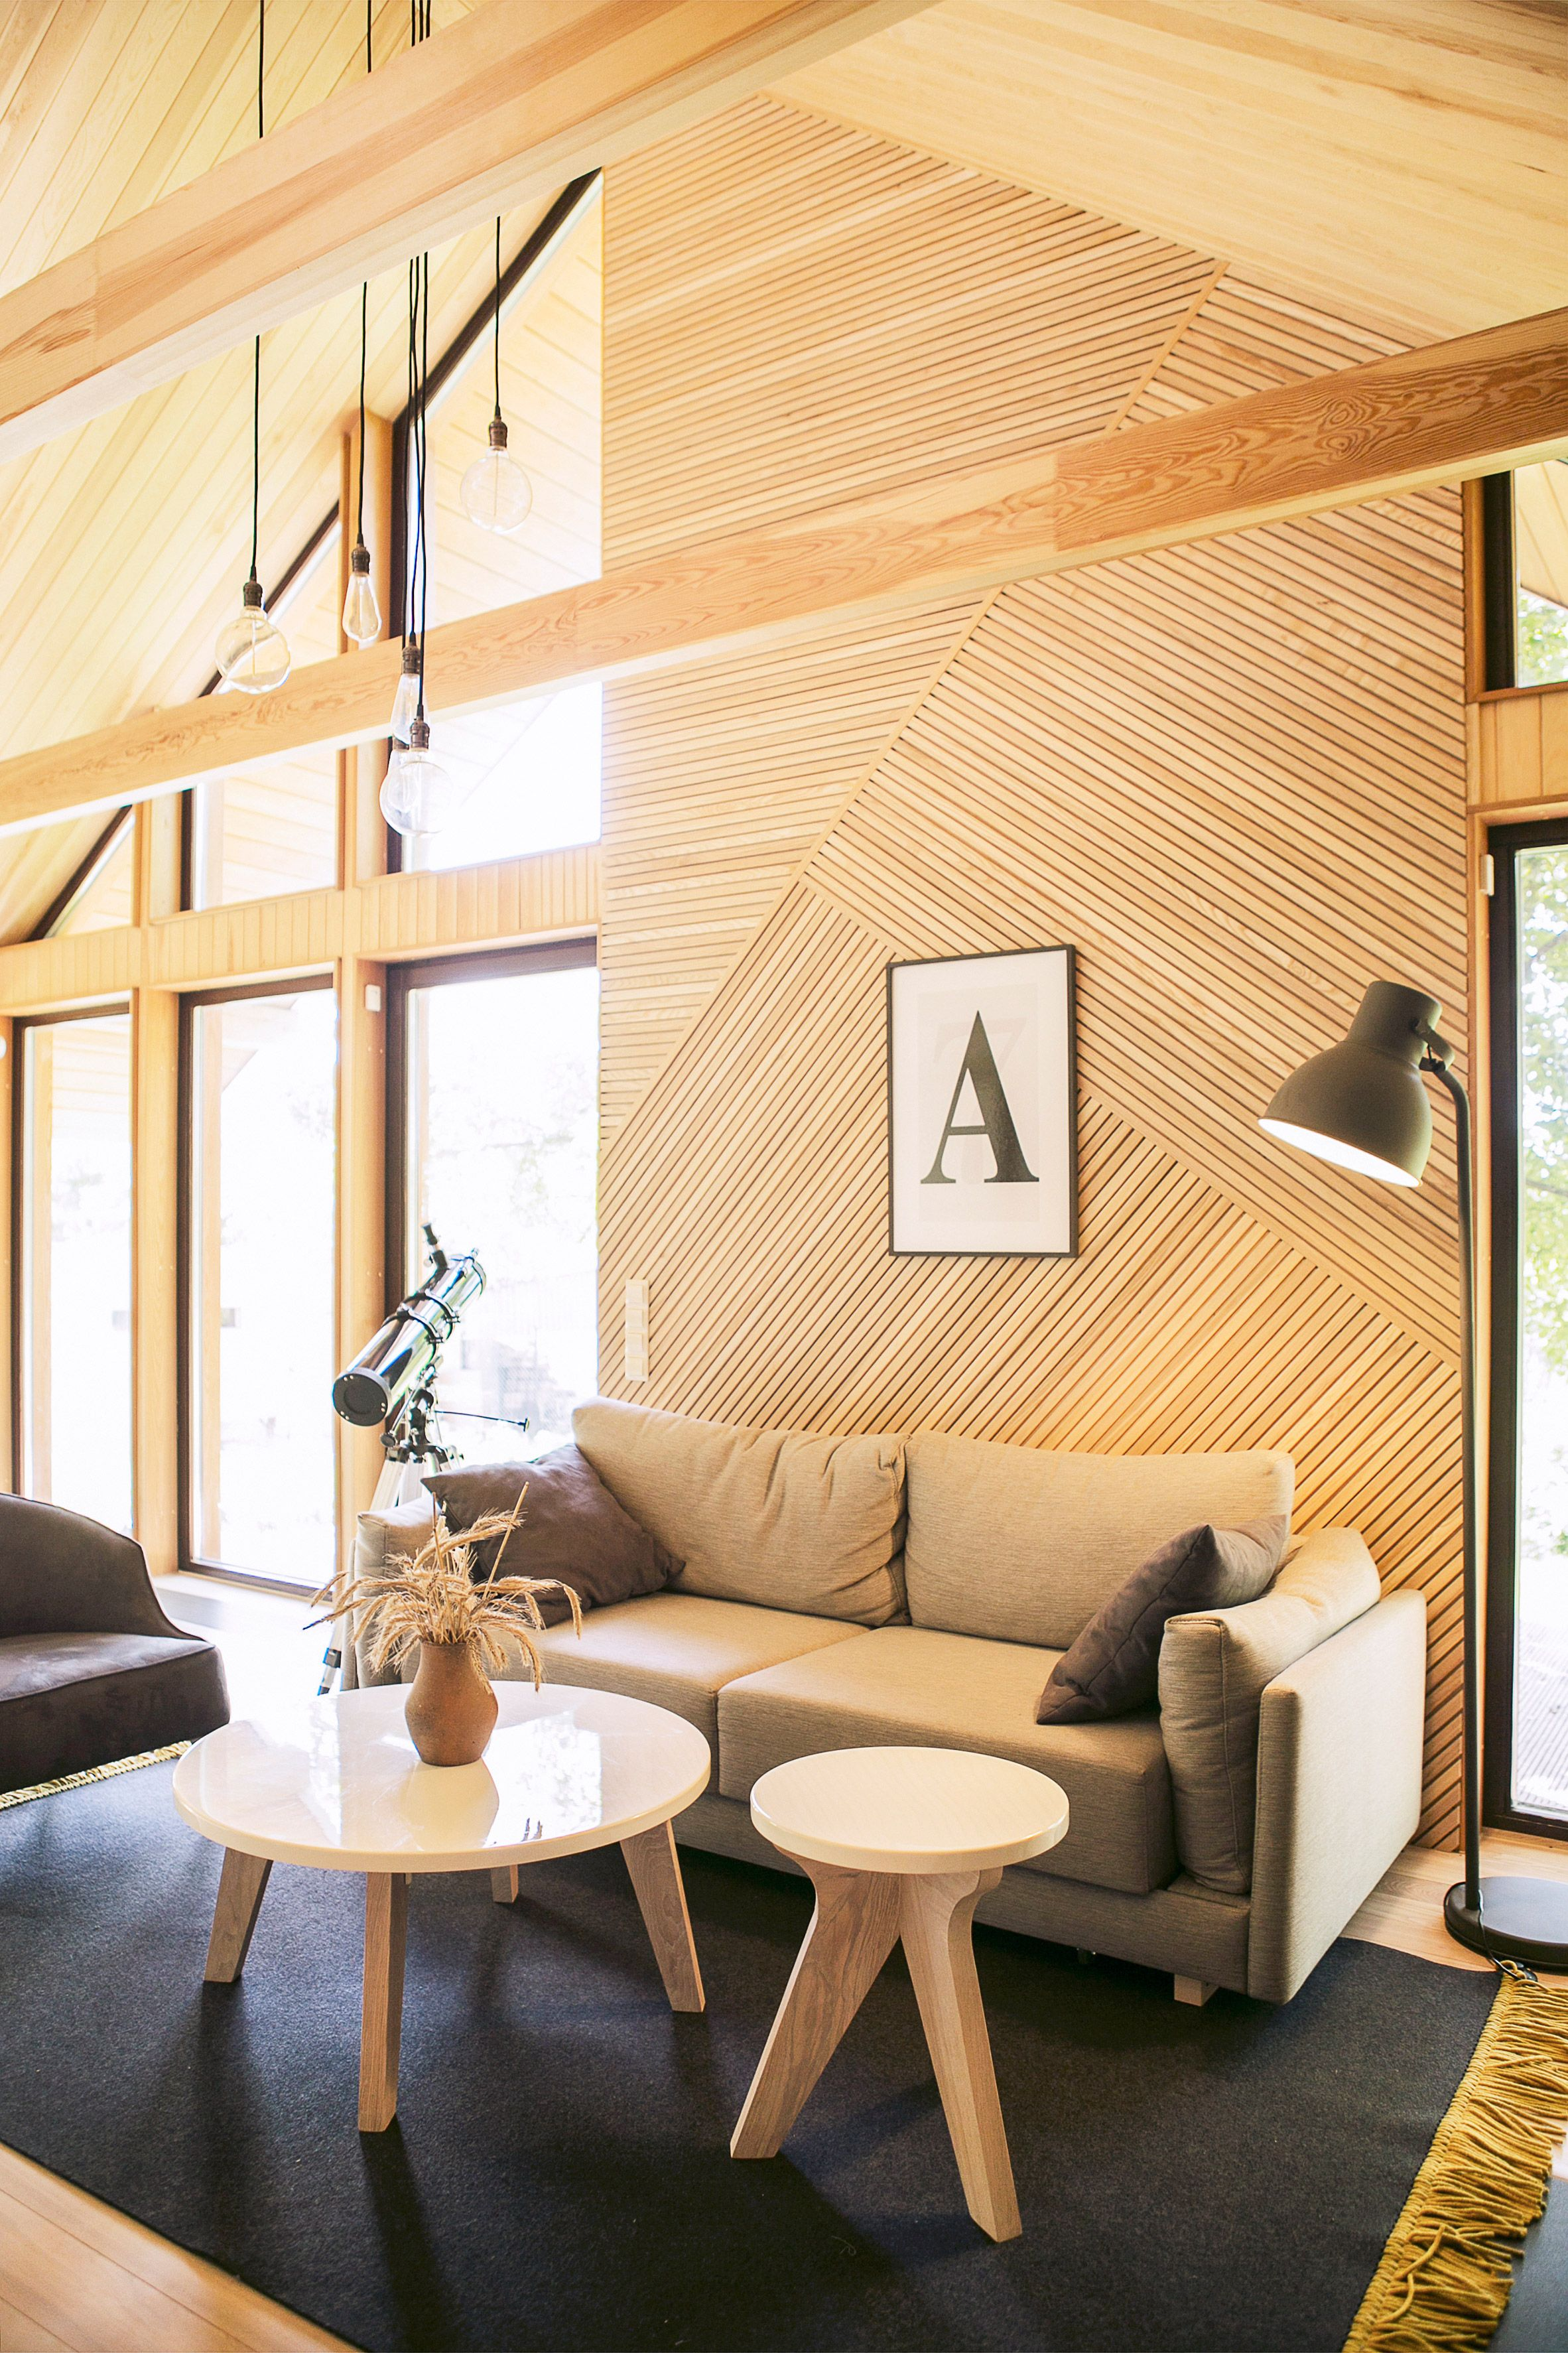 Zrobym Architect S Belarusian House References Scandinavian Architecture In 2020 Hygge Living Room Hygge Living Interior Architecture